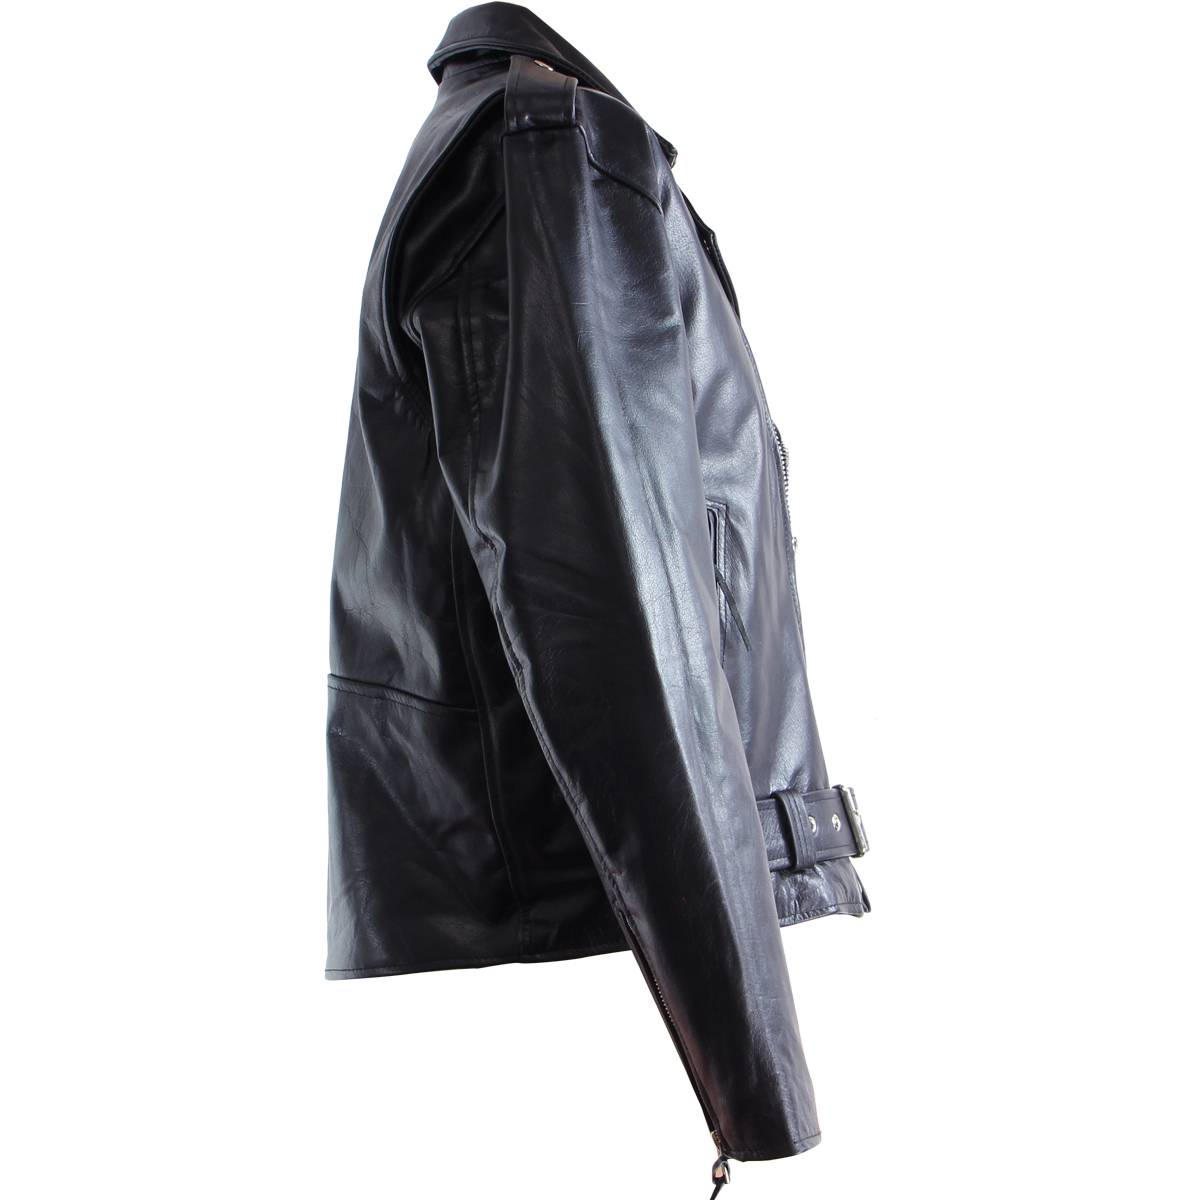 Black-TOP-GRADE-Leather-Motorcycle-Biker-Jacket-2